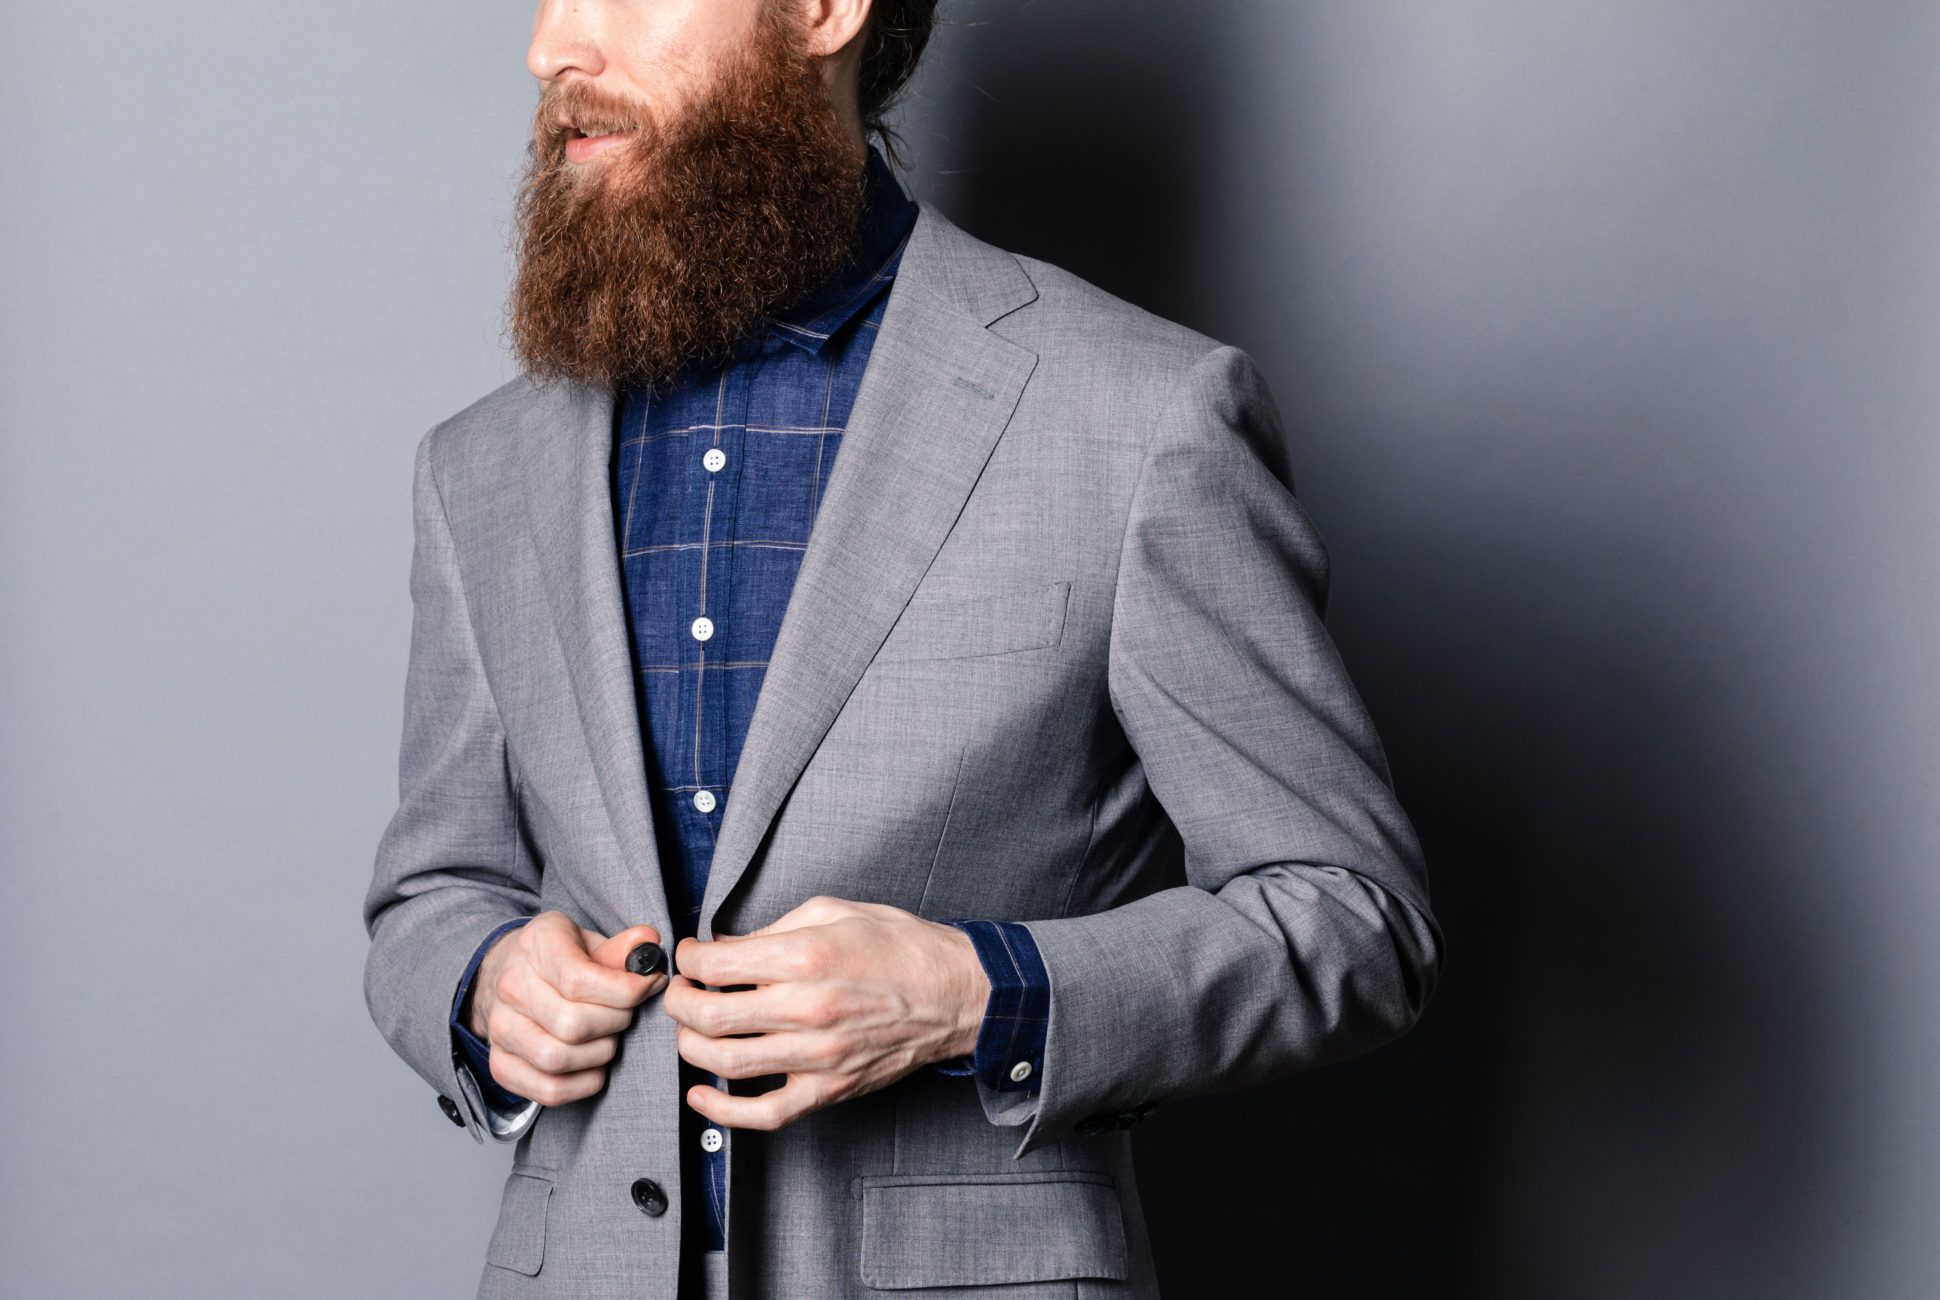 10-best-suits-under-1k-gear-patrol-editor-pick-suitsupply-1